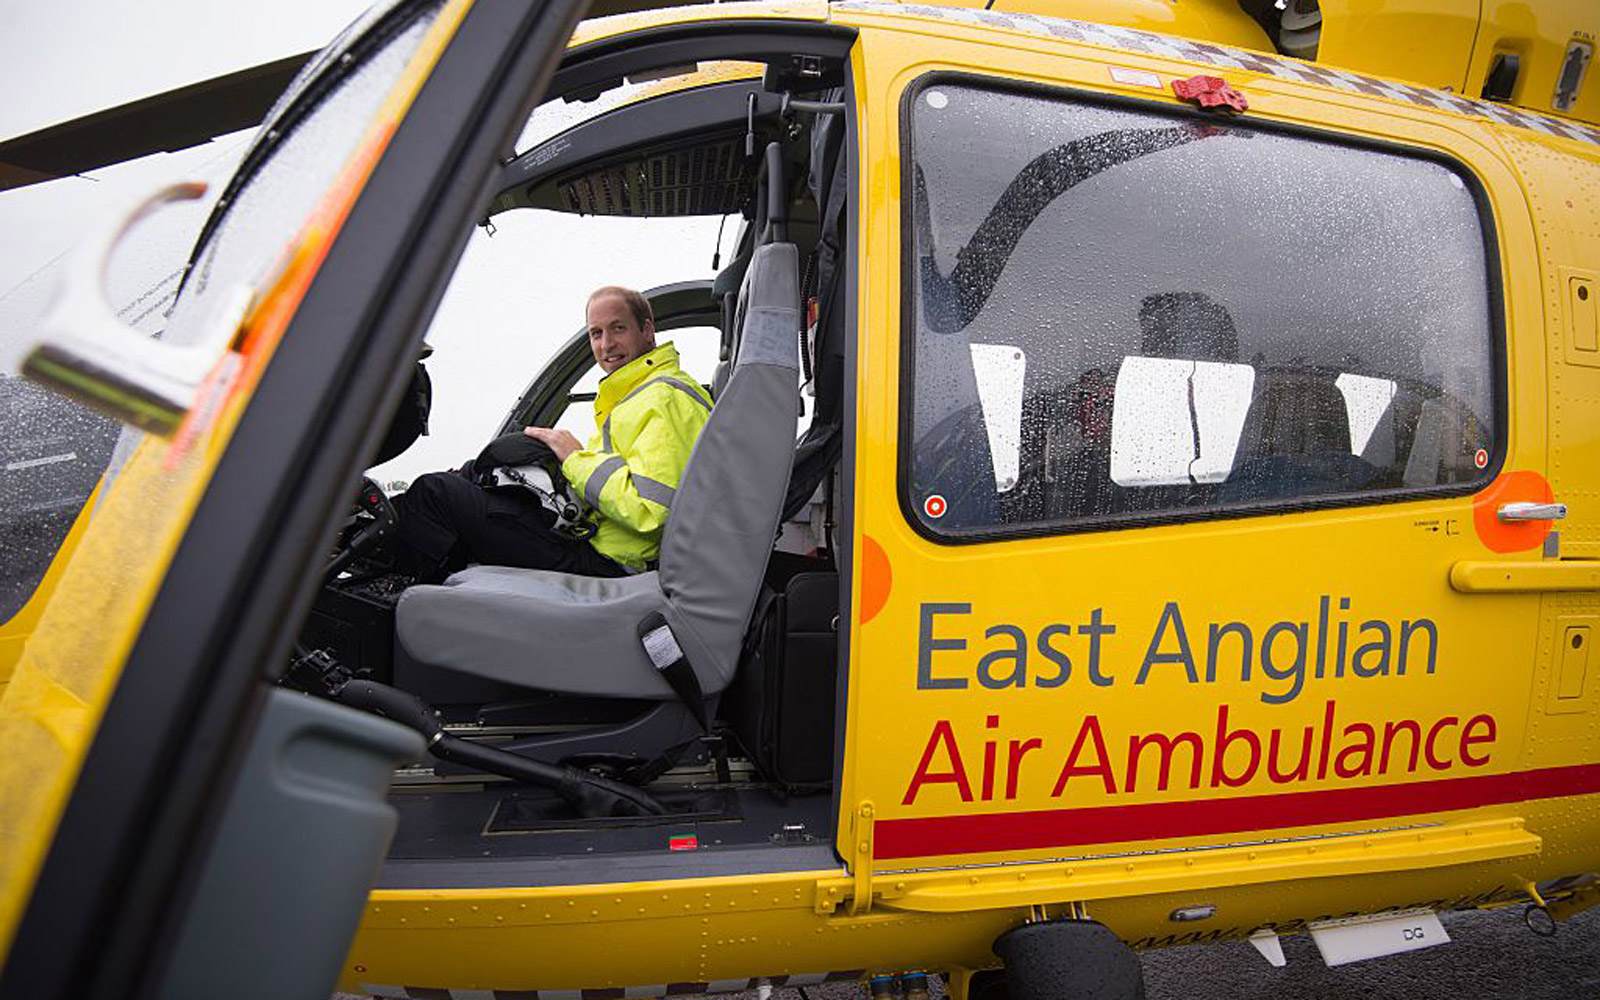 Britain's Prince William, The Duke of Cambridge poses in the cockpit of a helicopter air ambulance he begins his new job with the East Anglian Air Ambulance (EAAA) at Cambridge Airport on July 13, 2015. The former RAF search and rescue helicopter pilot wi